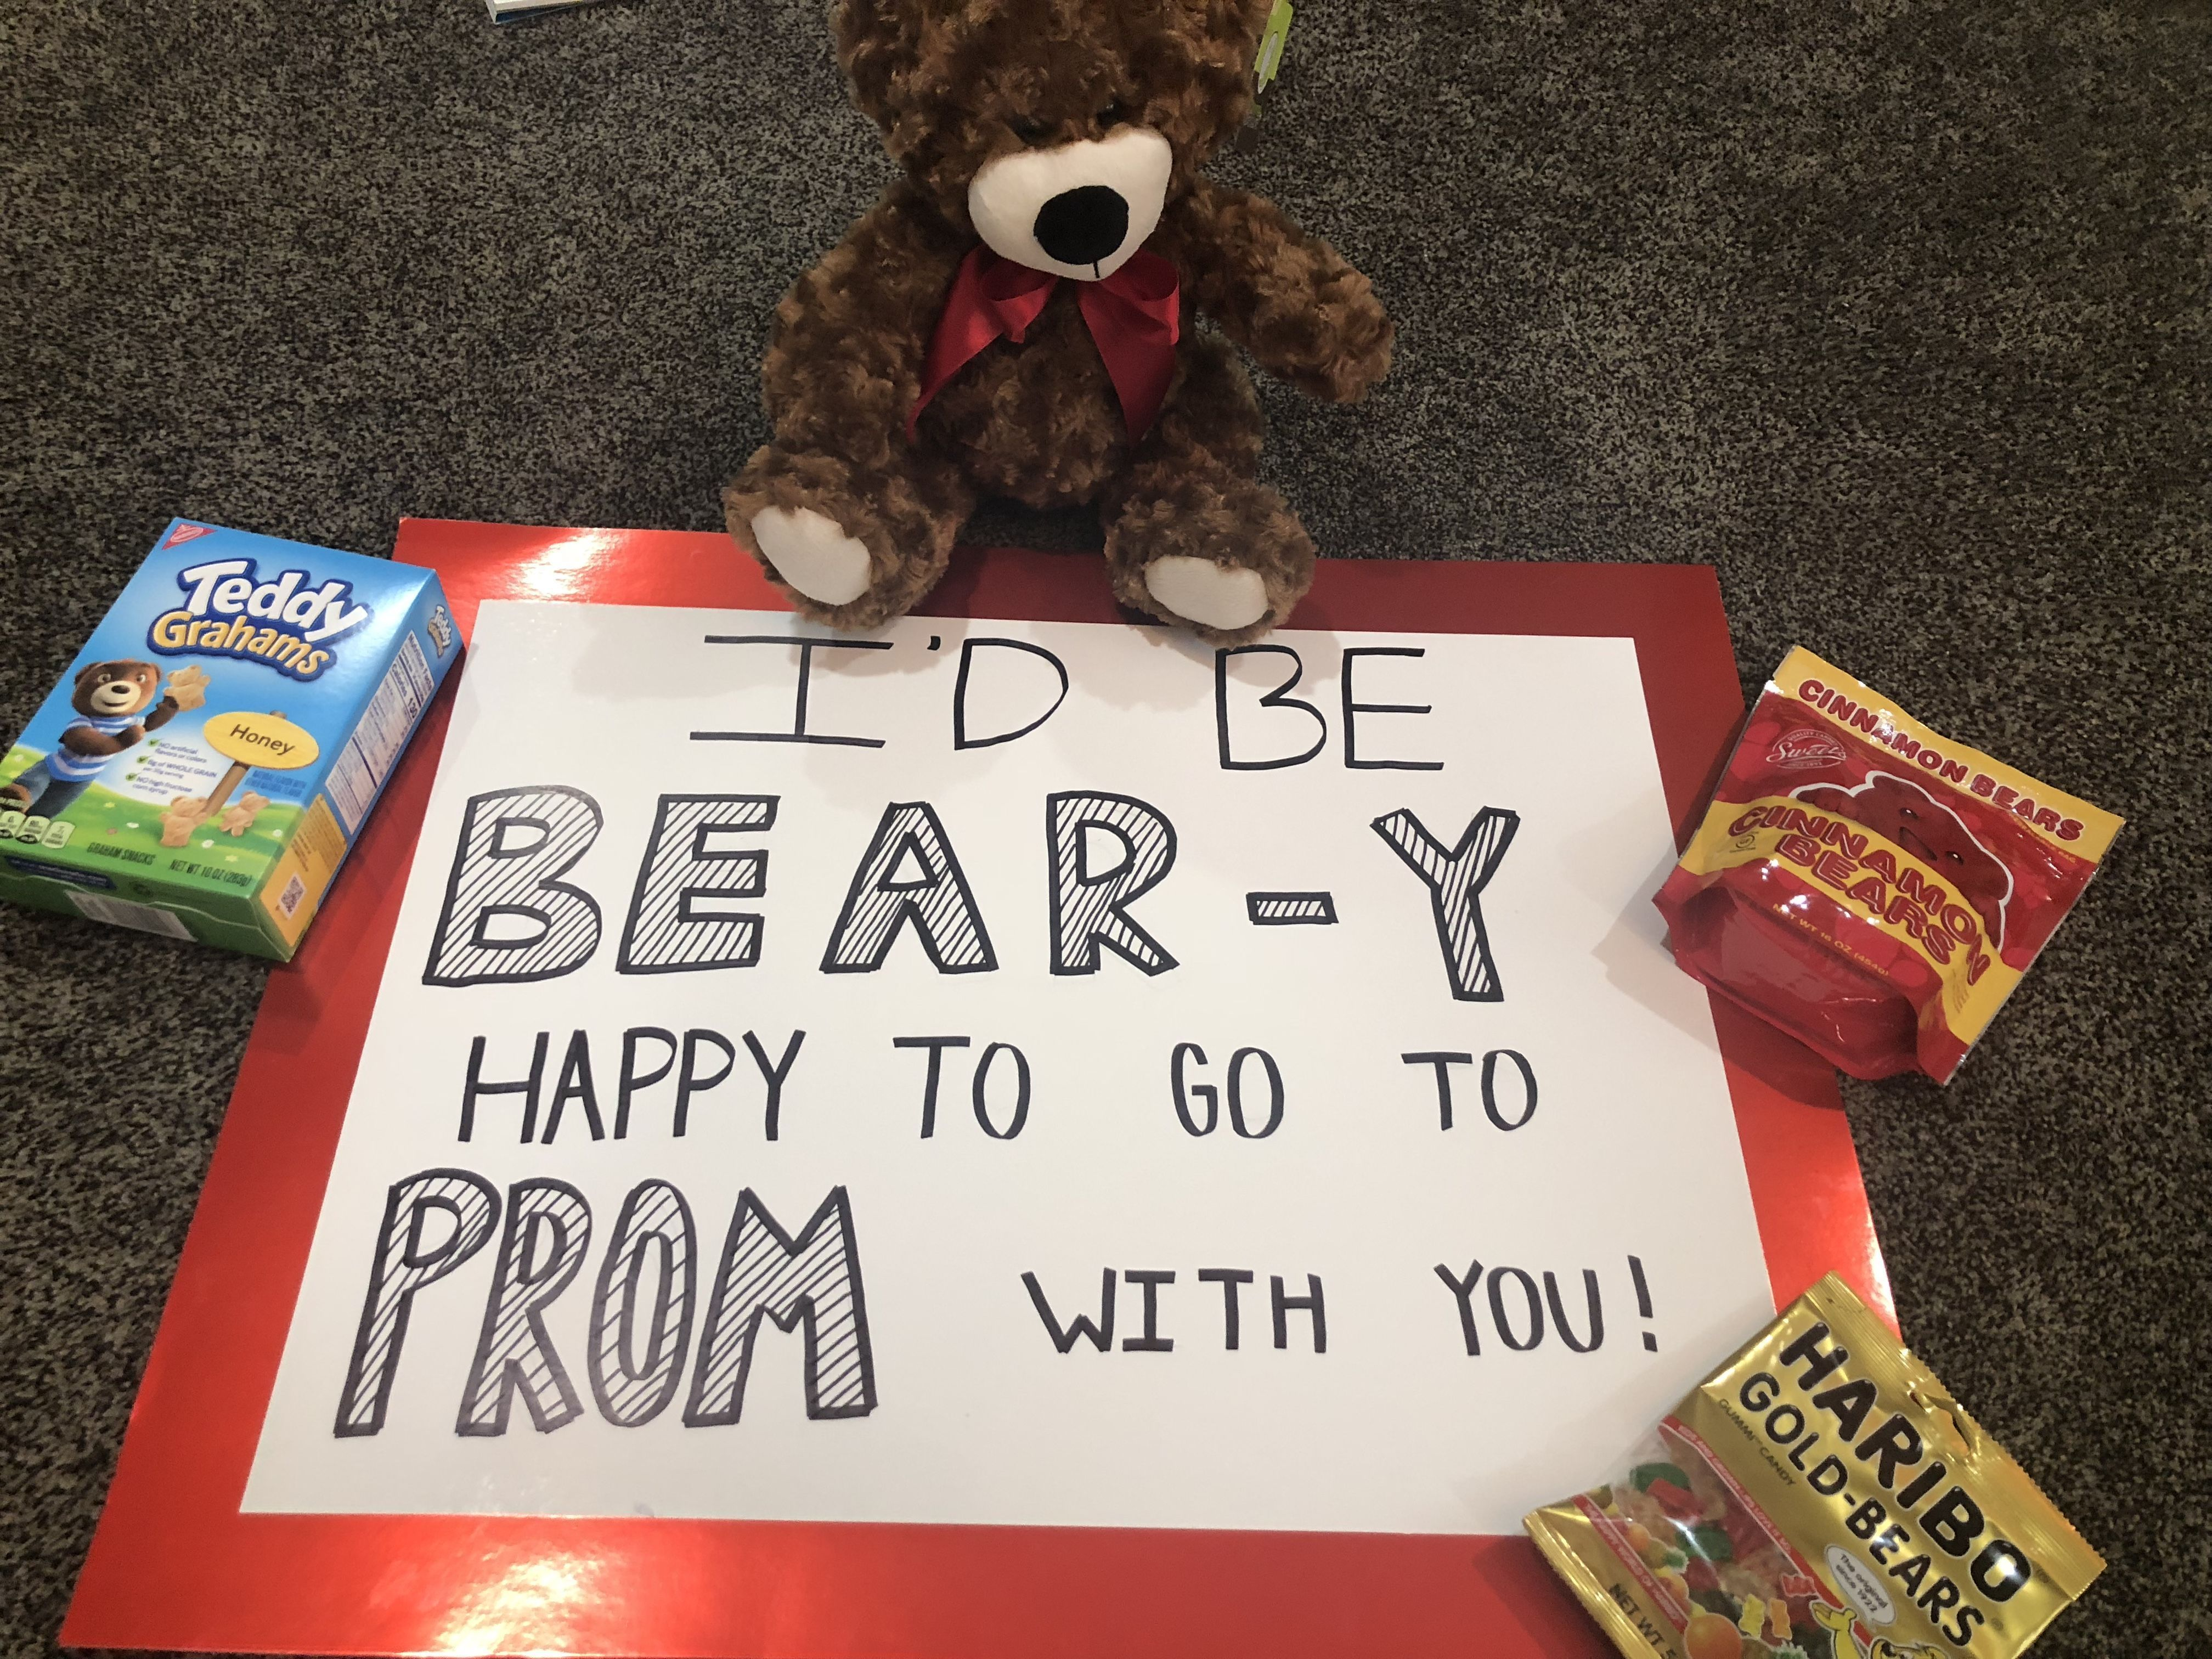 I'd be BEARY happy to go to prom with you! Promposal/ prom response/ dance asking #bestfriendprompictures #hocoproposals